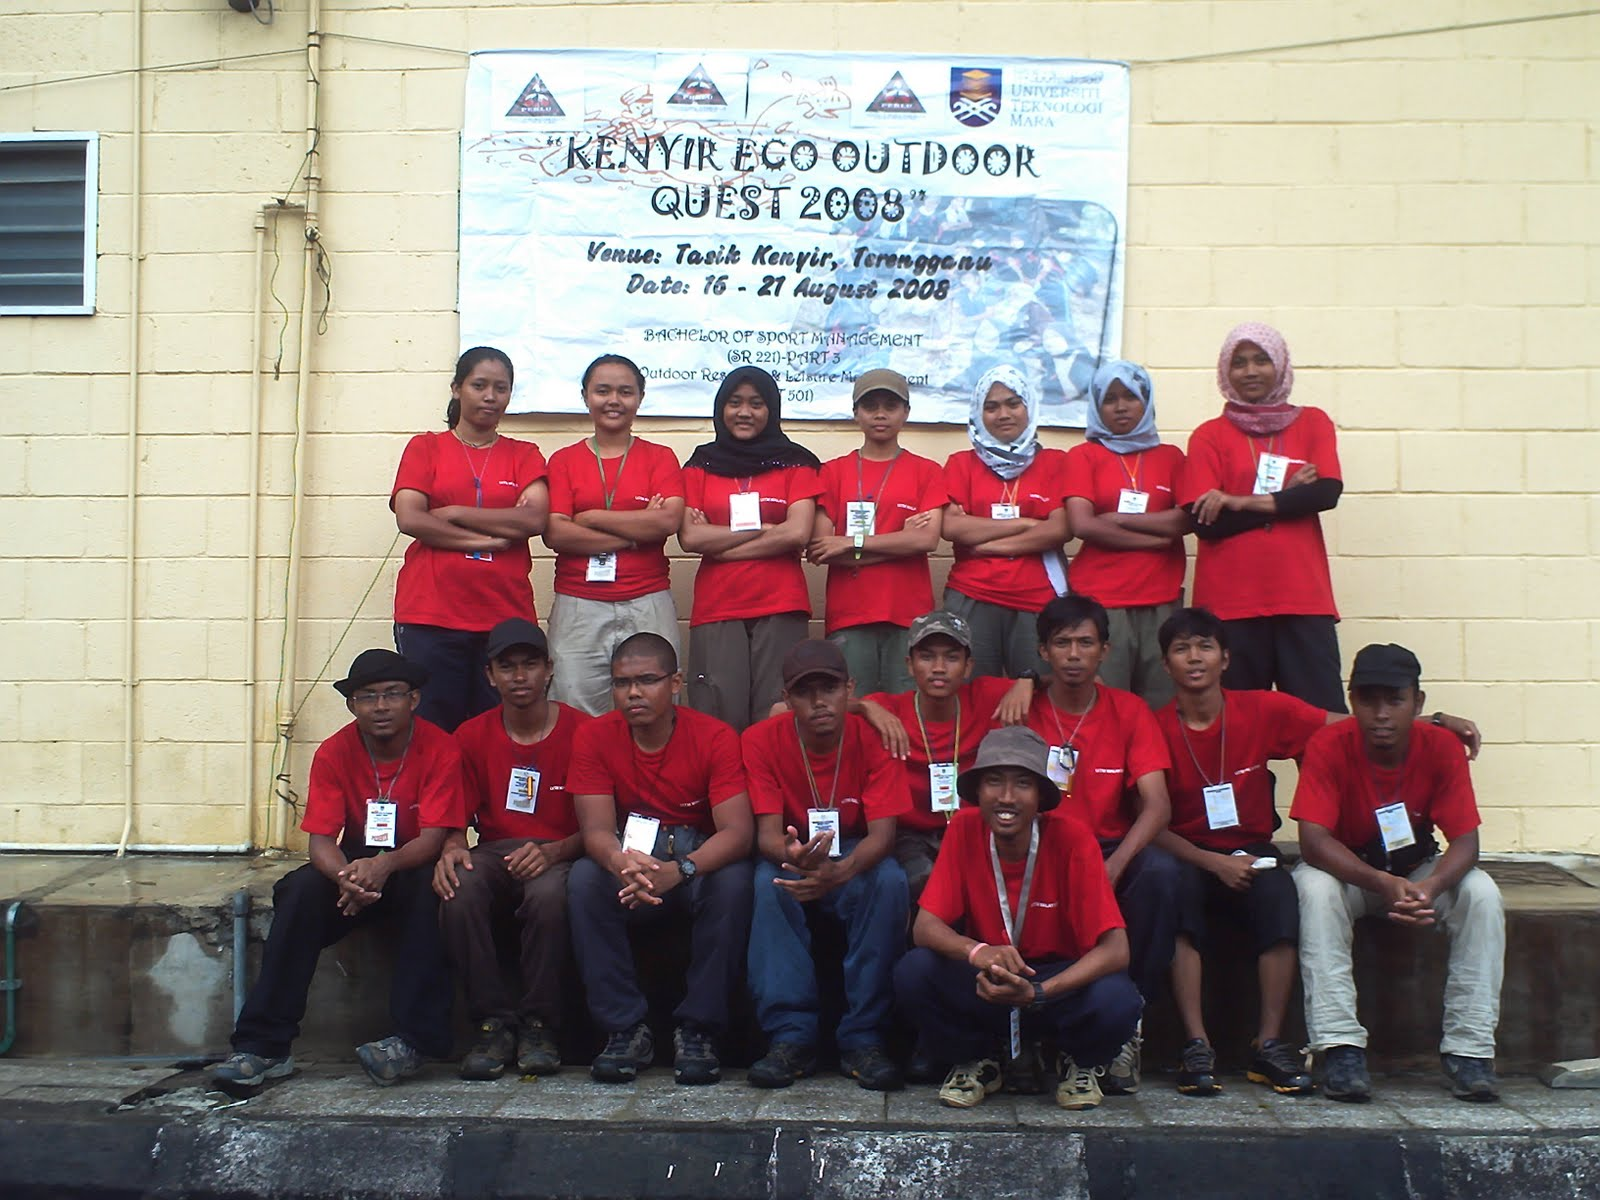 Kenyir Eco Outdoor Quest 08'